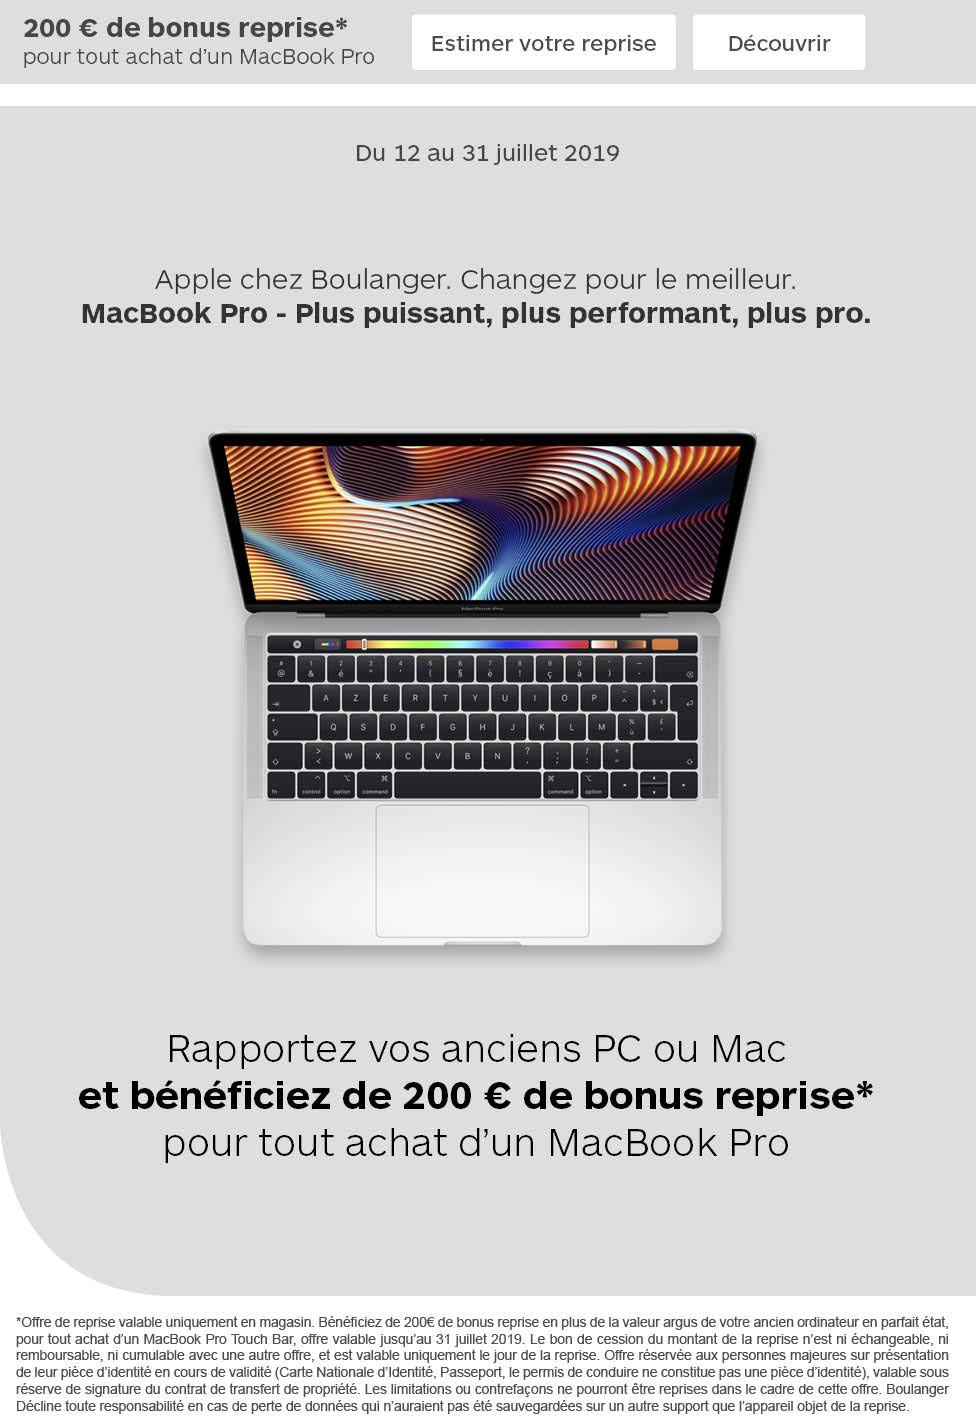 Reprise MacBook Pro 2019 Boulanger